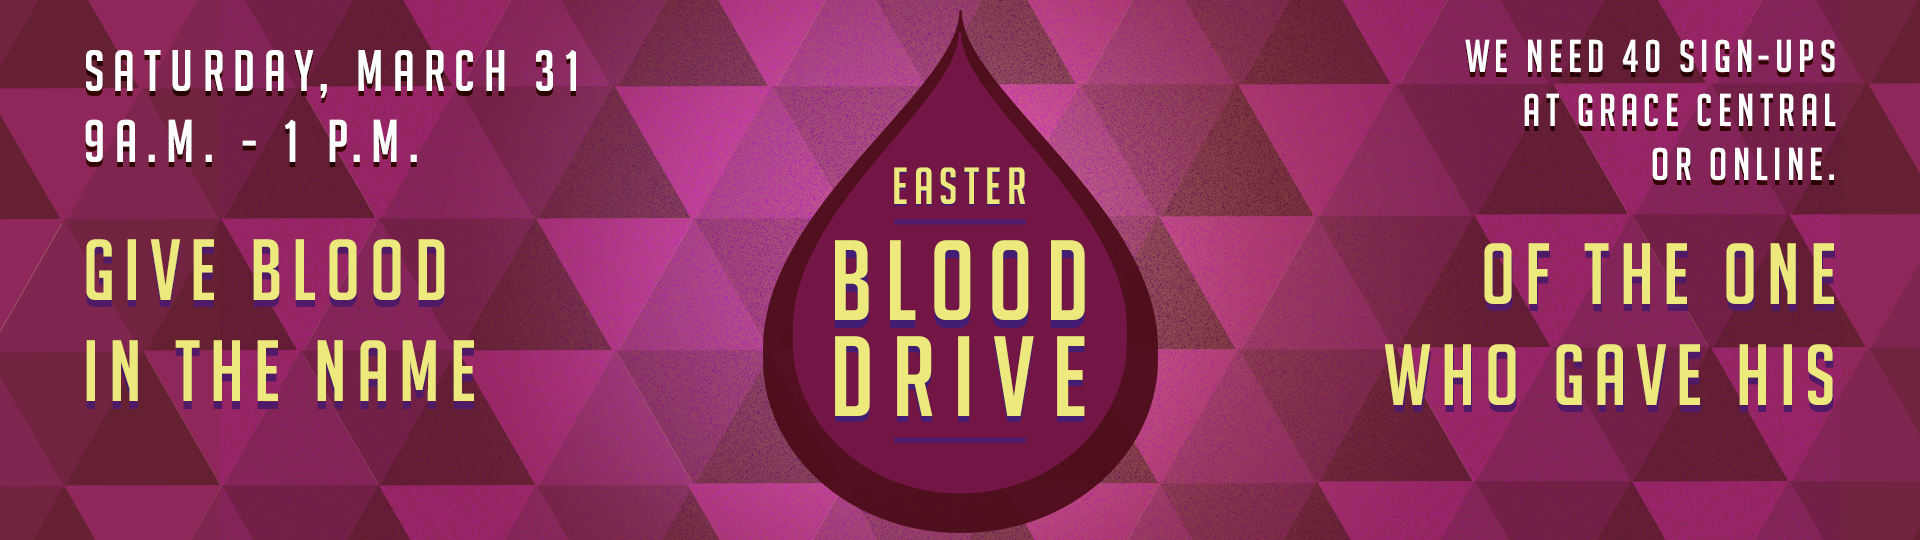 blood drive easter web